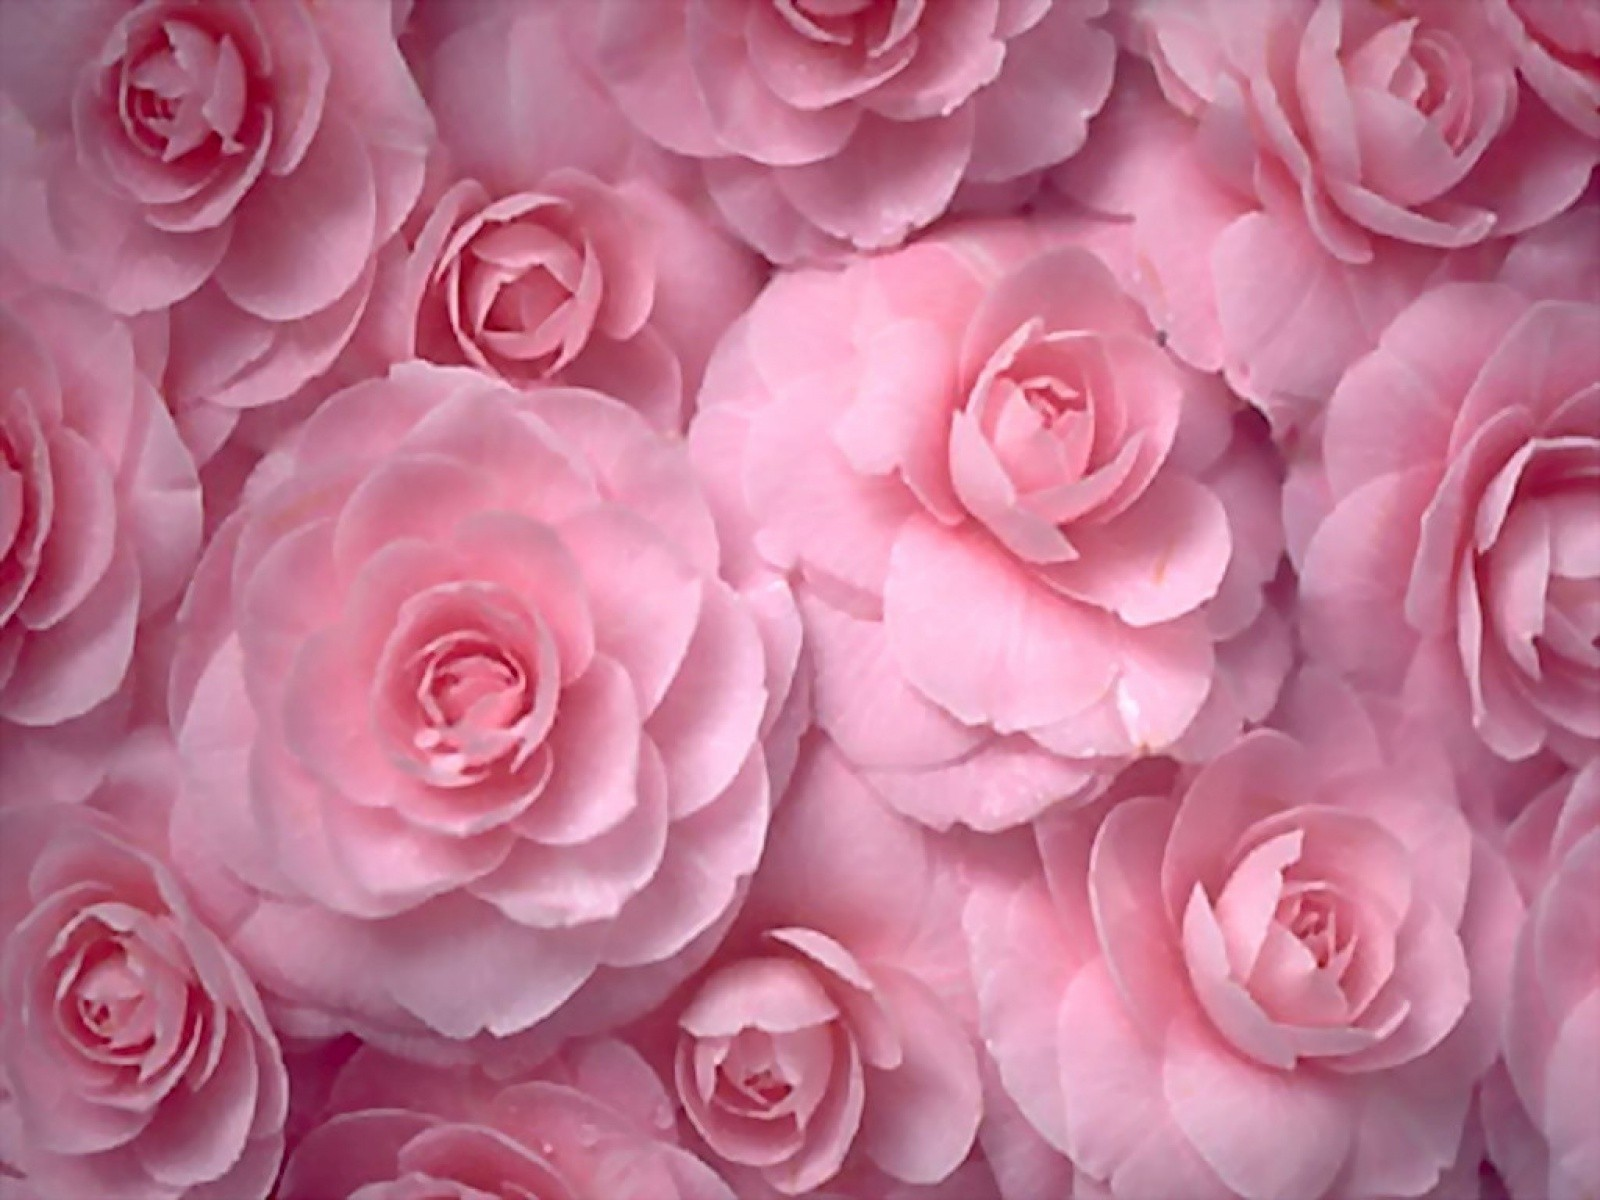 Flowers Roses Pink Flowers Wallpaper 1600x1200 220924 Wallpaperup